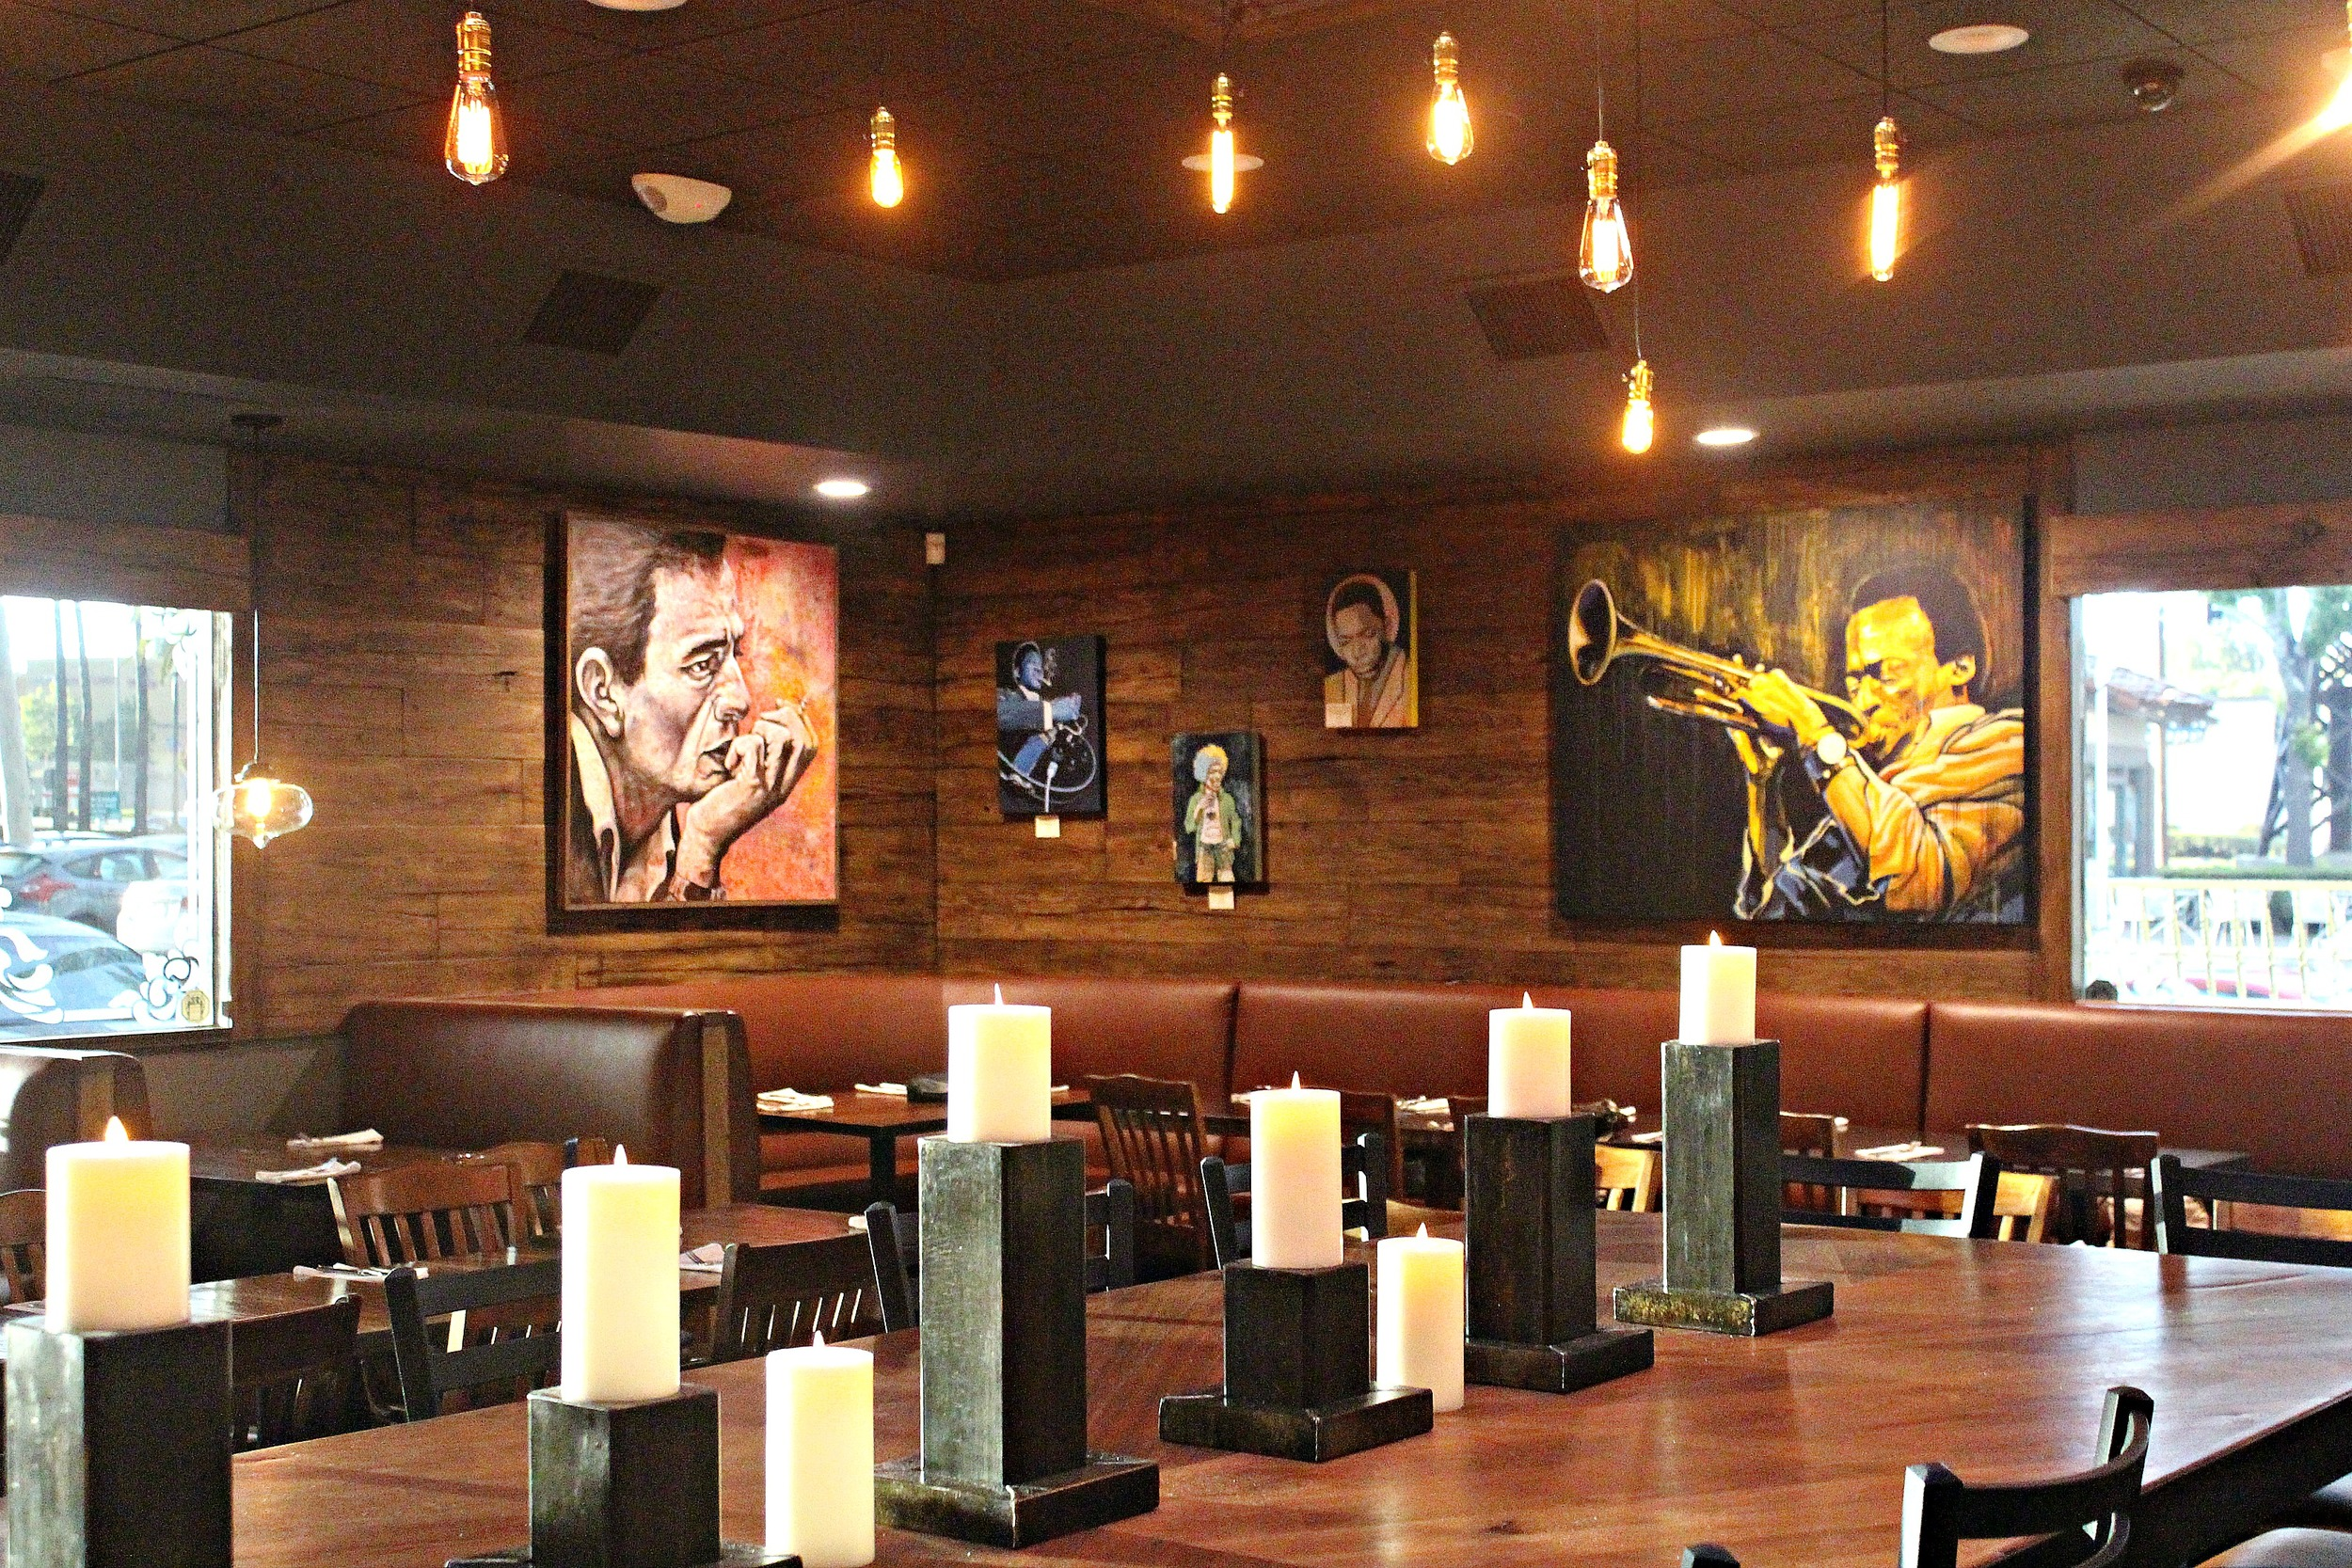 Tempo Urban Kitchen - A real foodie